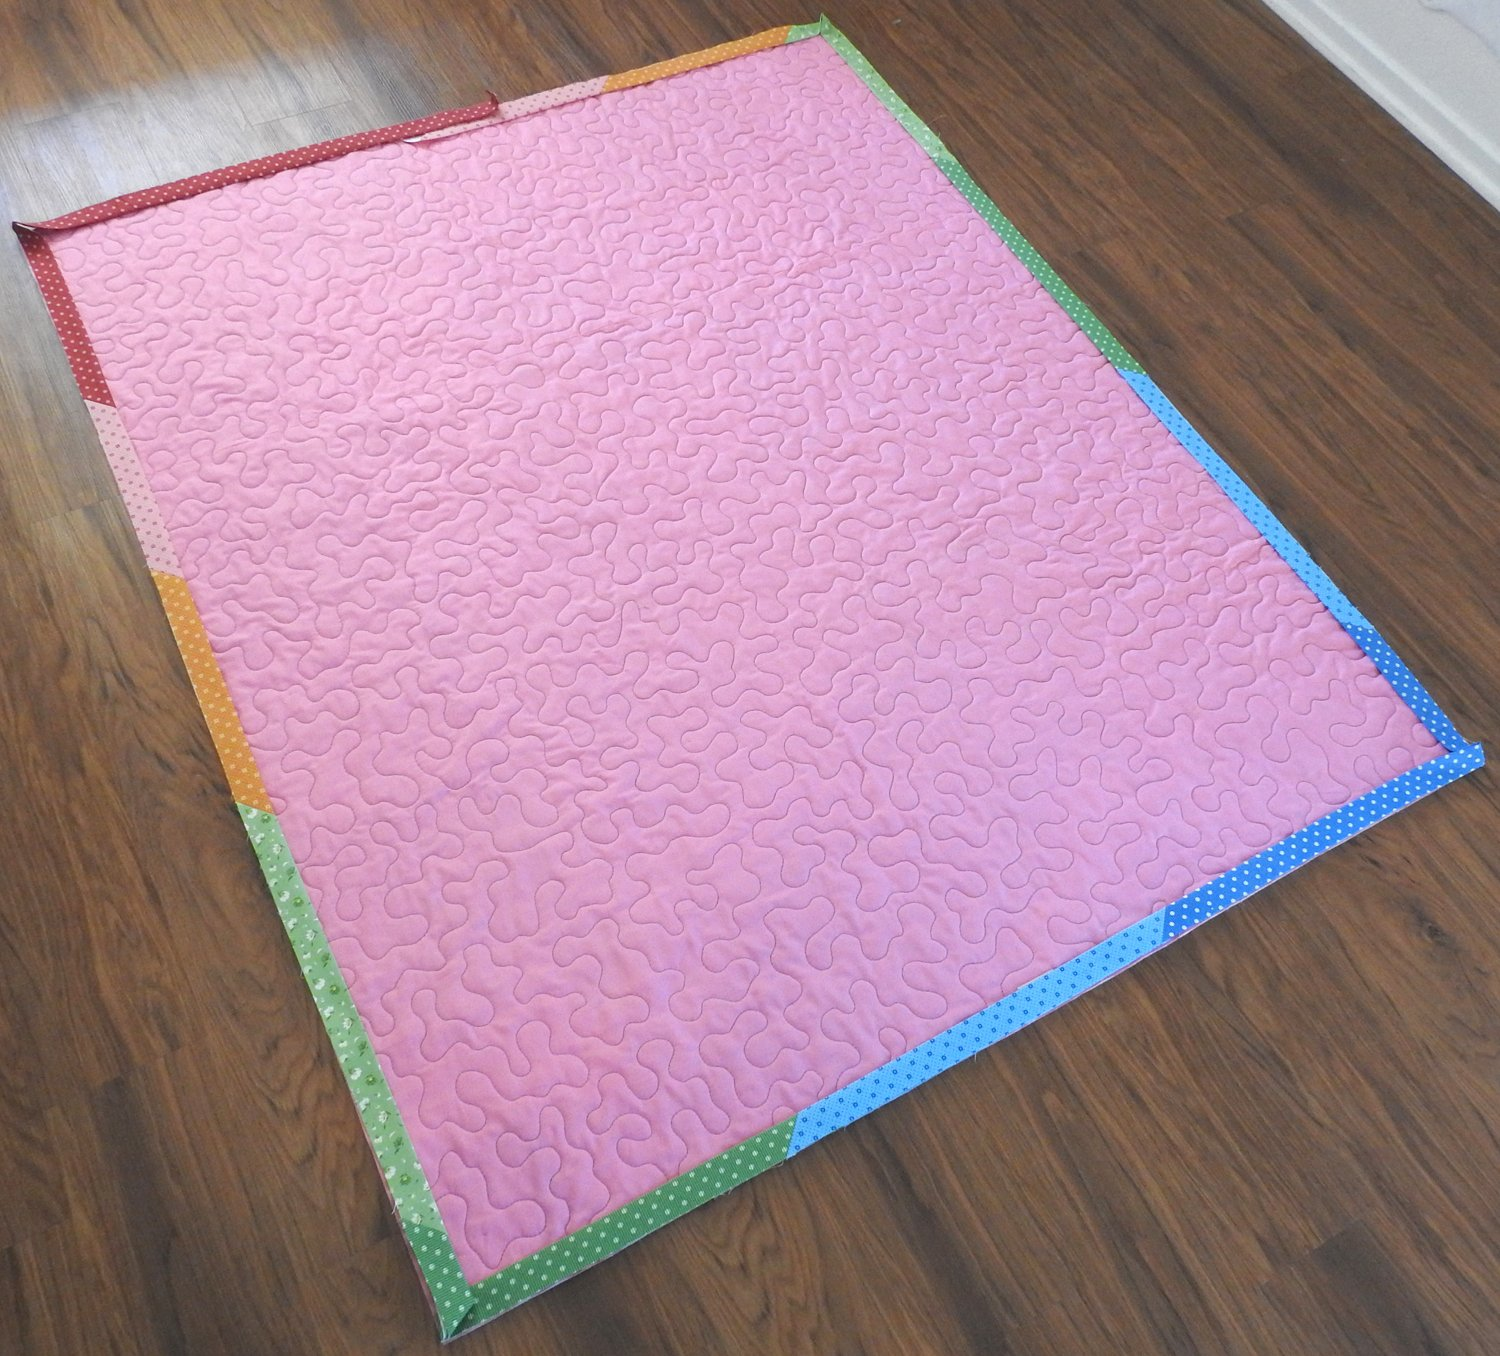 Laying out the binding